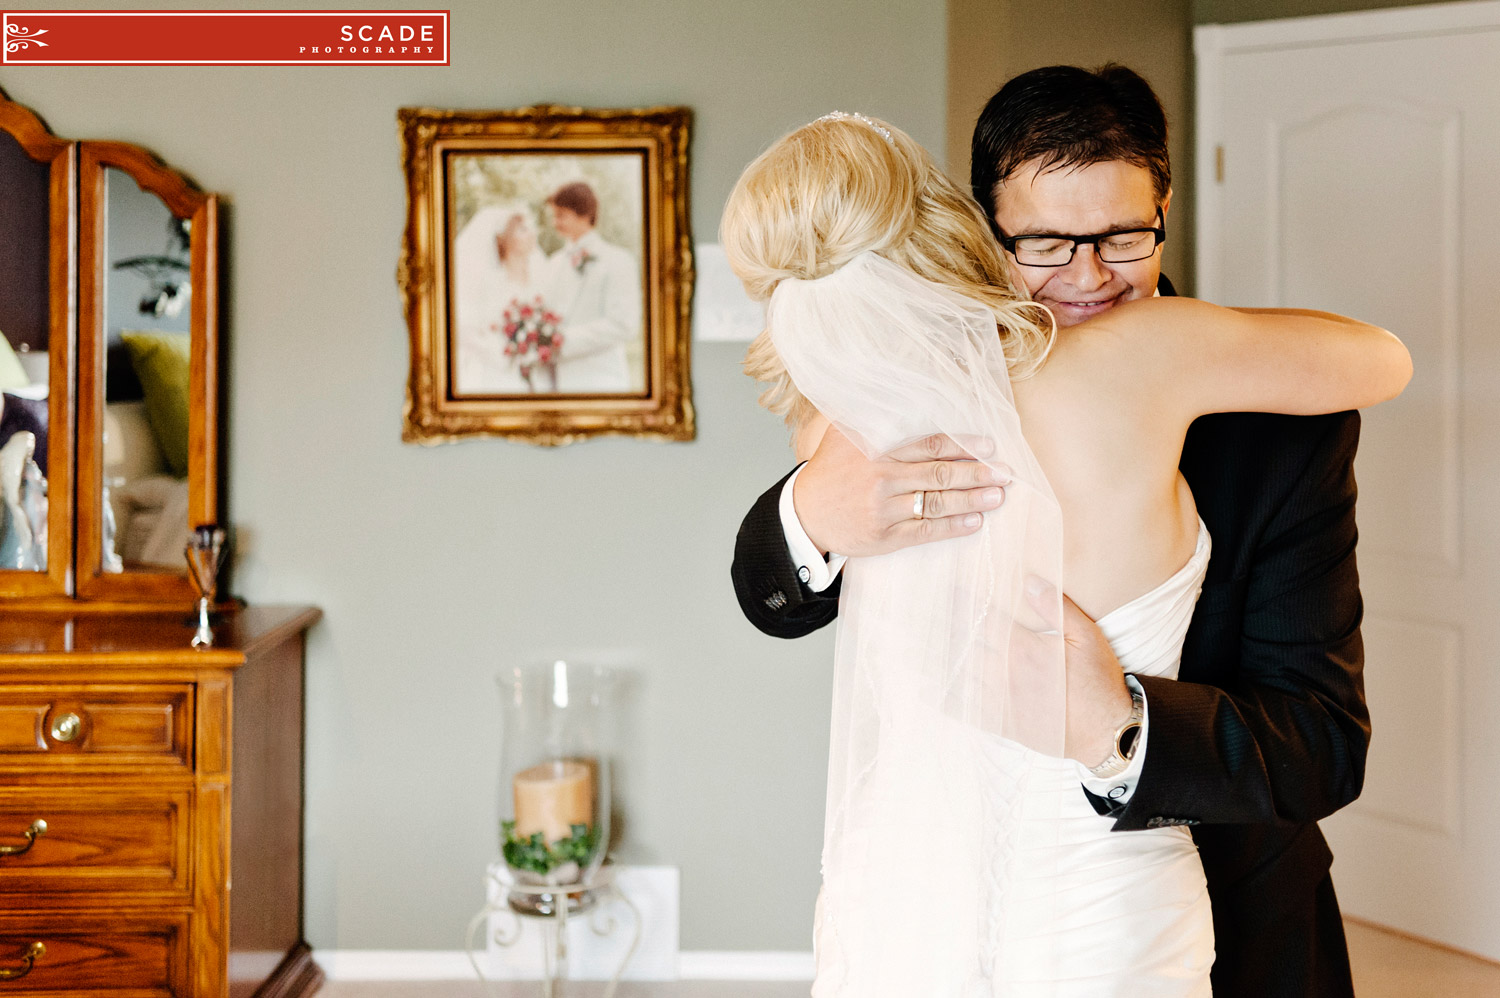 Lamont Wedding Photography - Brittney and Michael - 0006.JPG